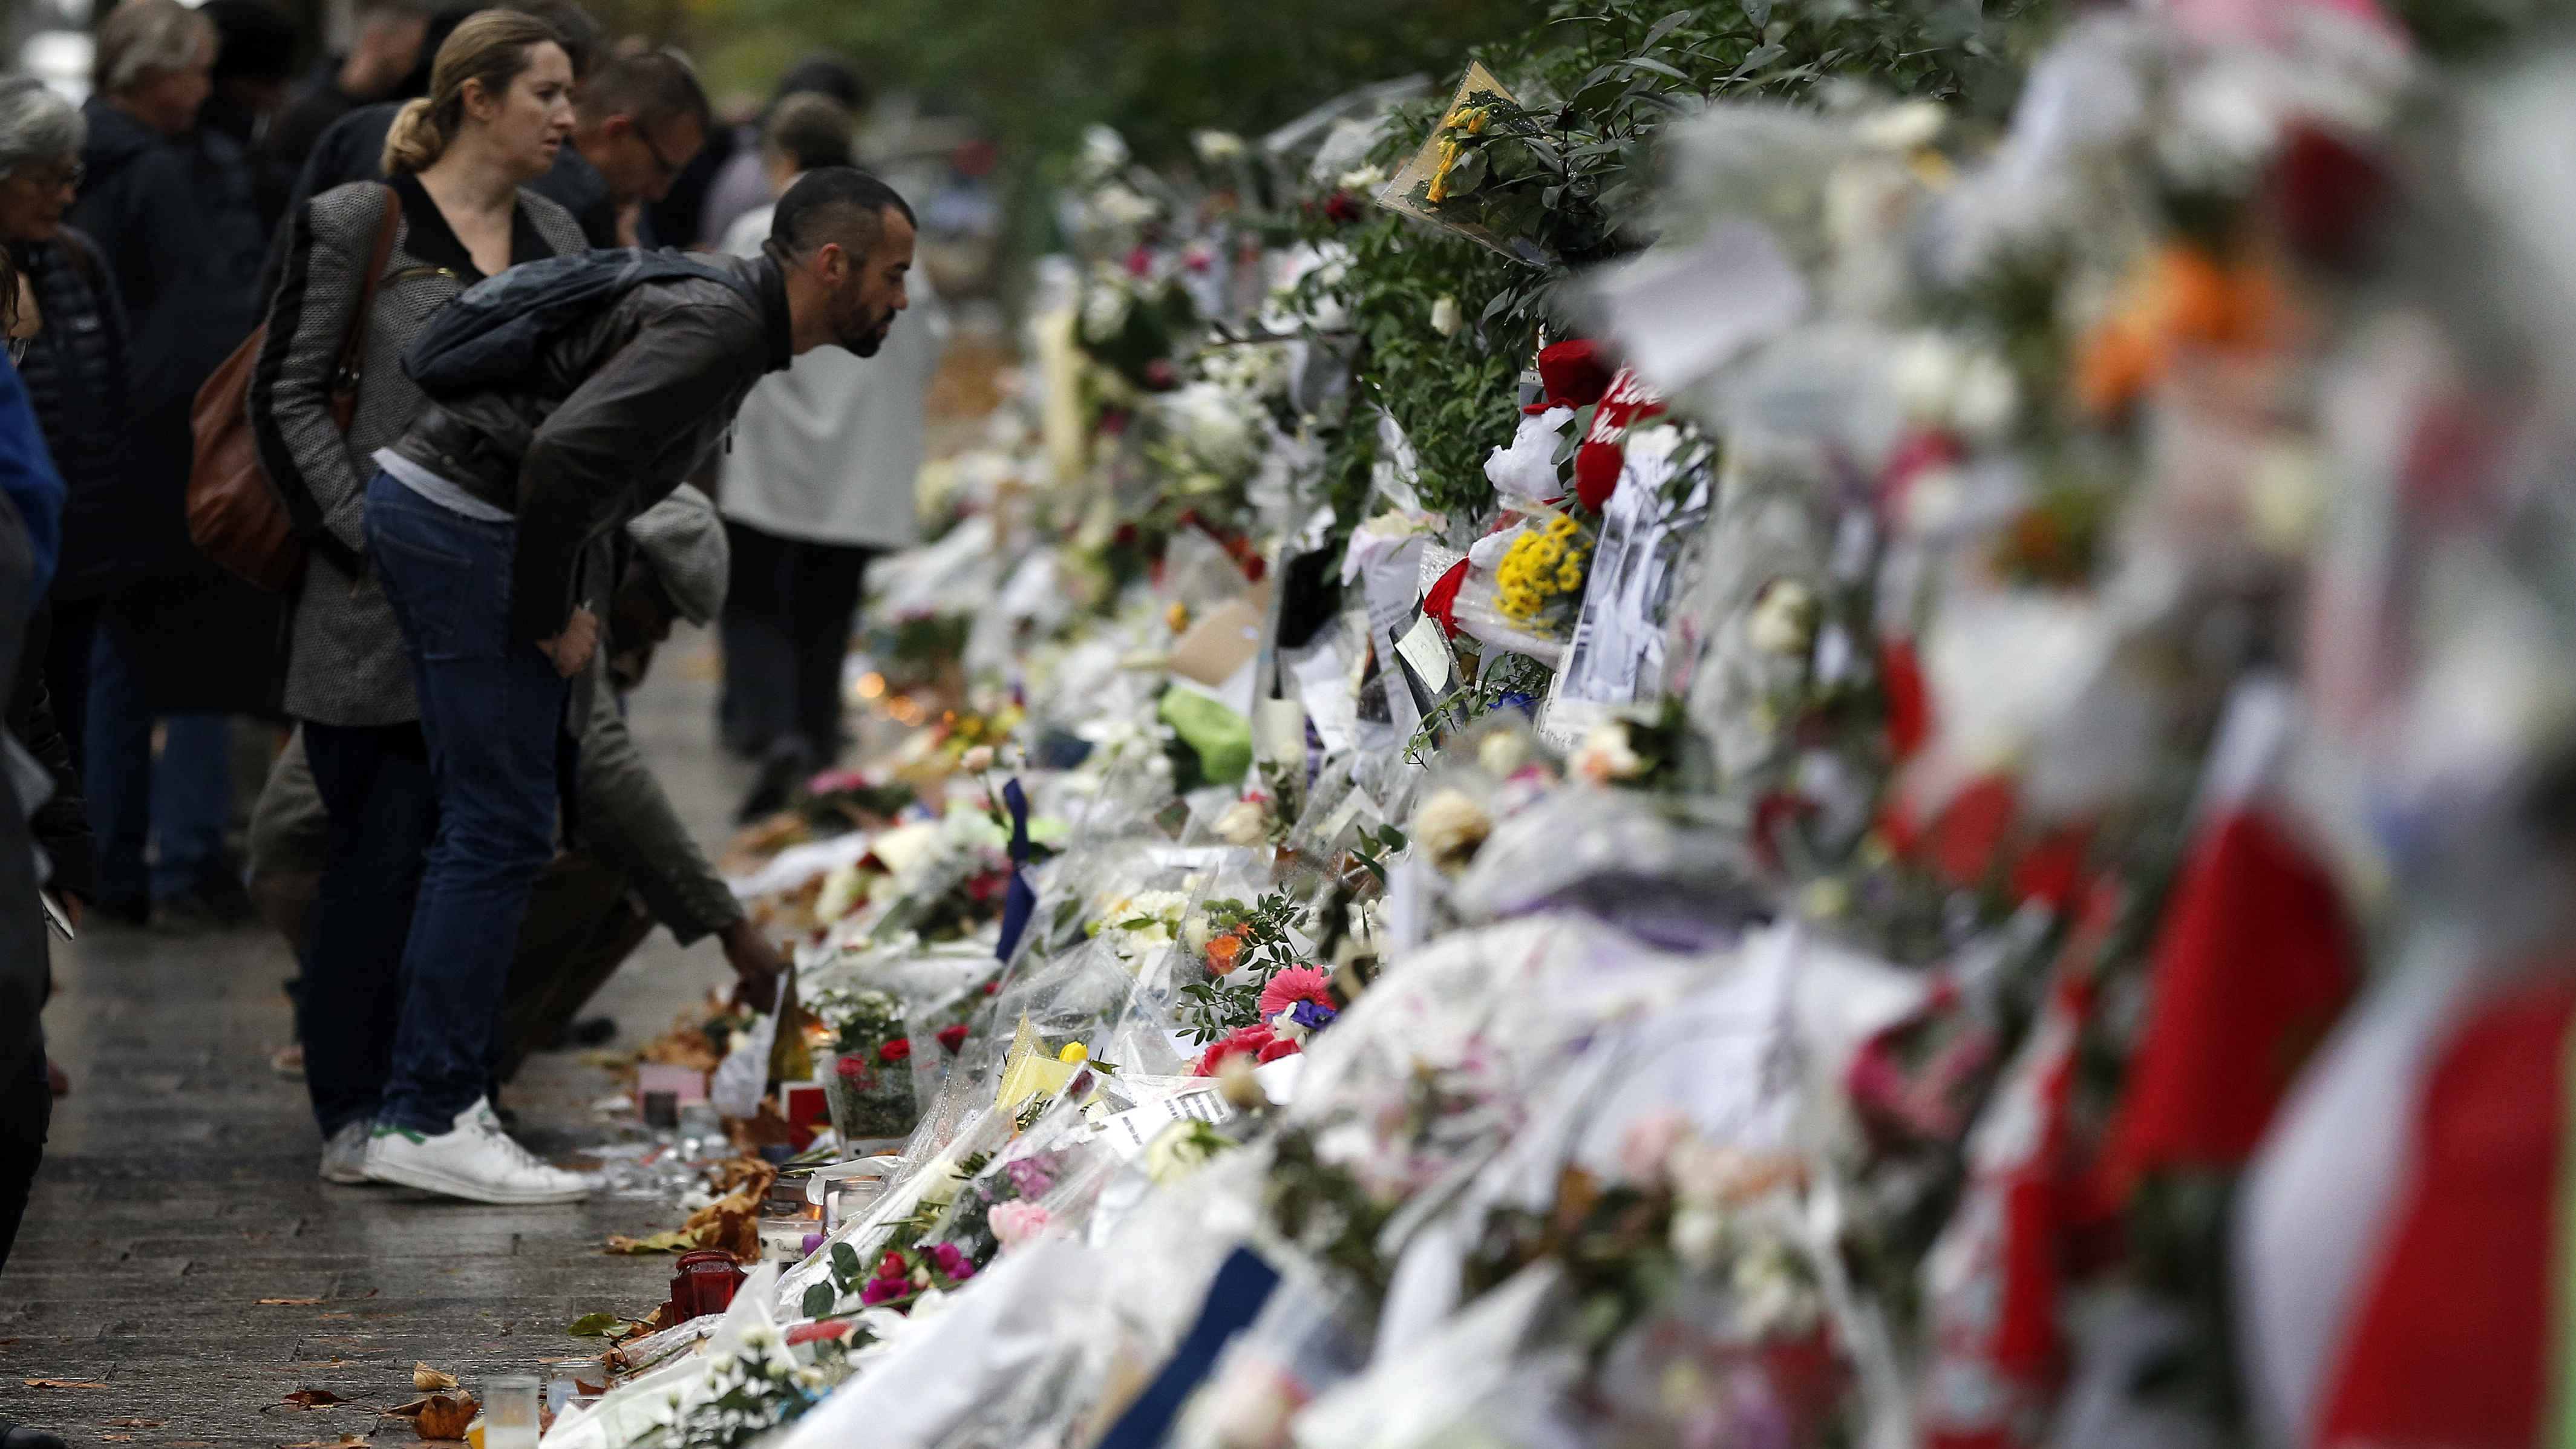 People look at flowers and card tributes placed outside the Bataclan concert hall in Paris, Thursday, Nov. 19, 2015